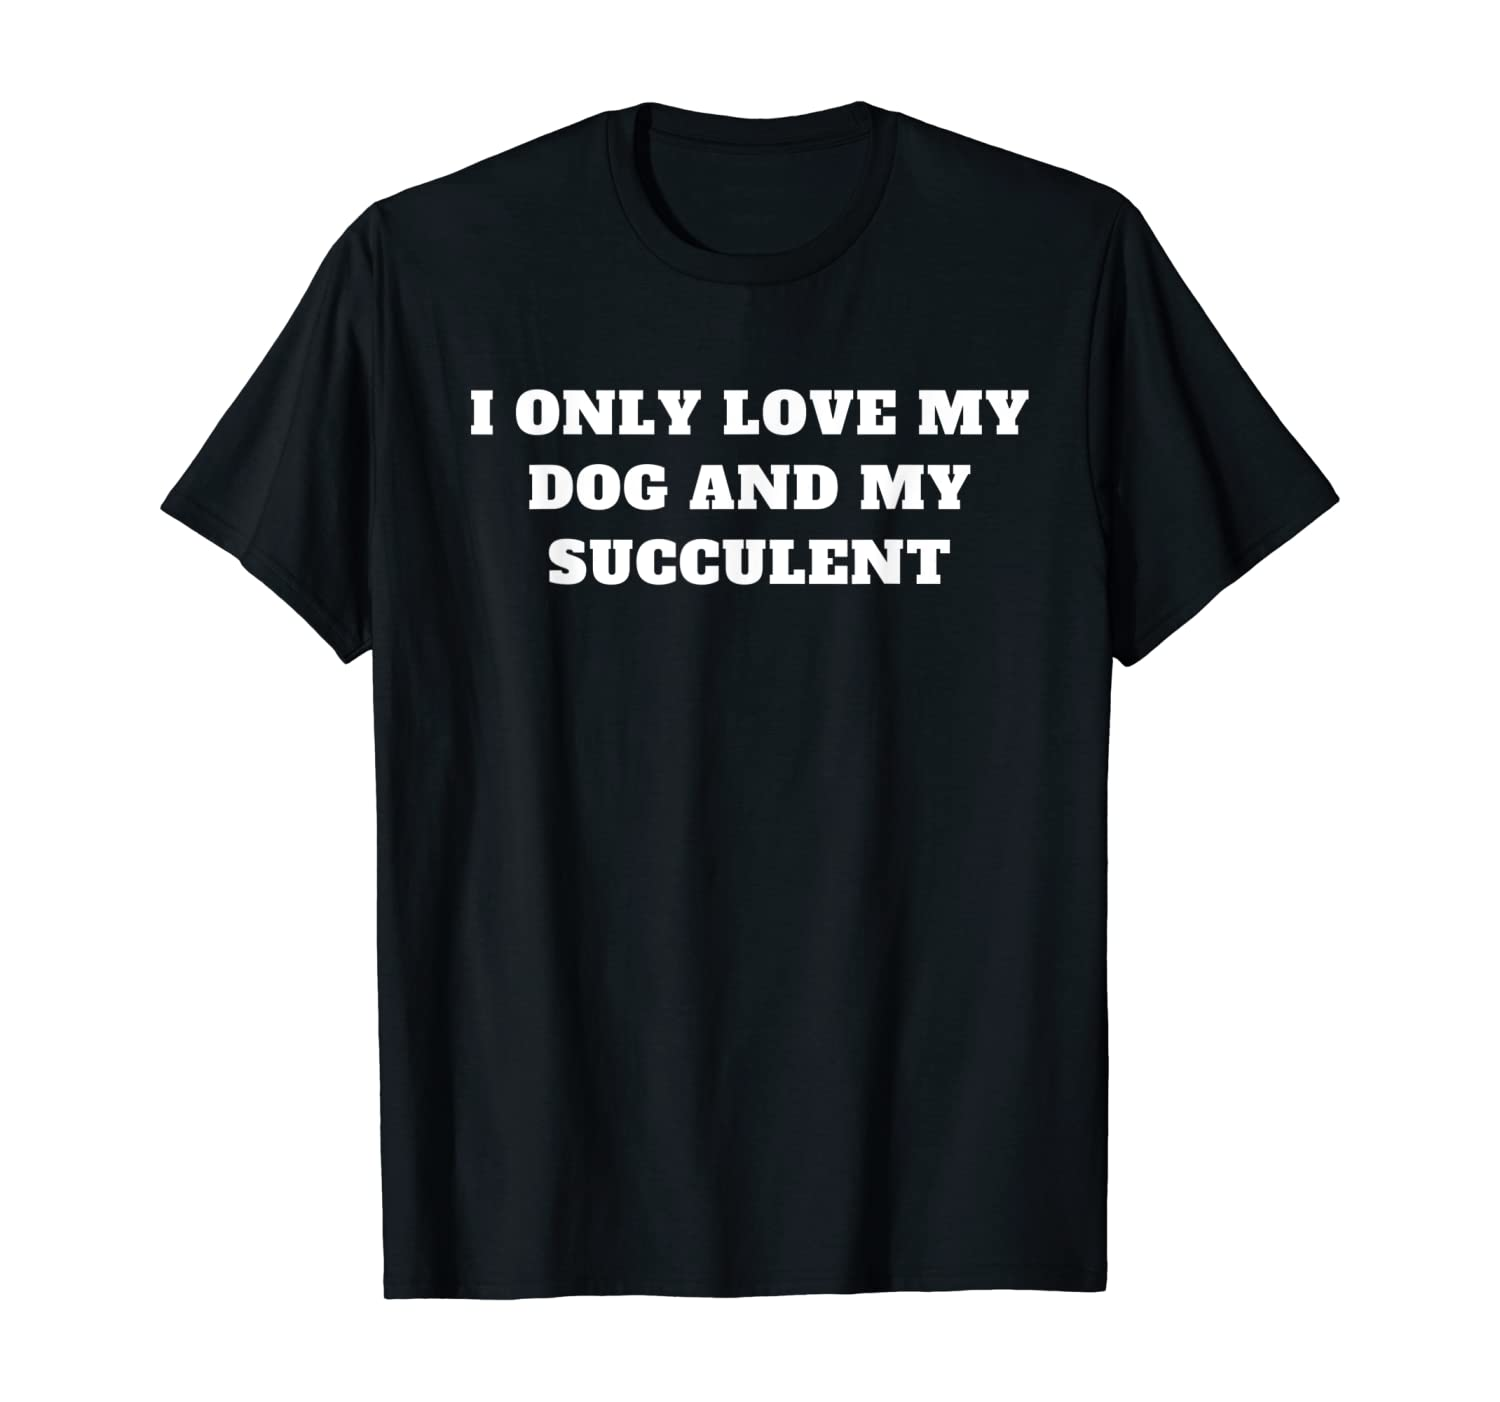 I only love my dog and my succulent T-Shirt